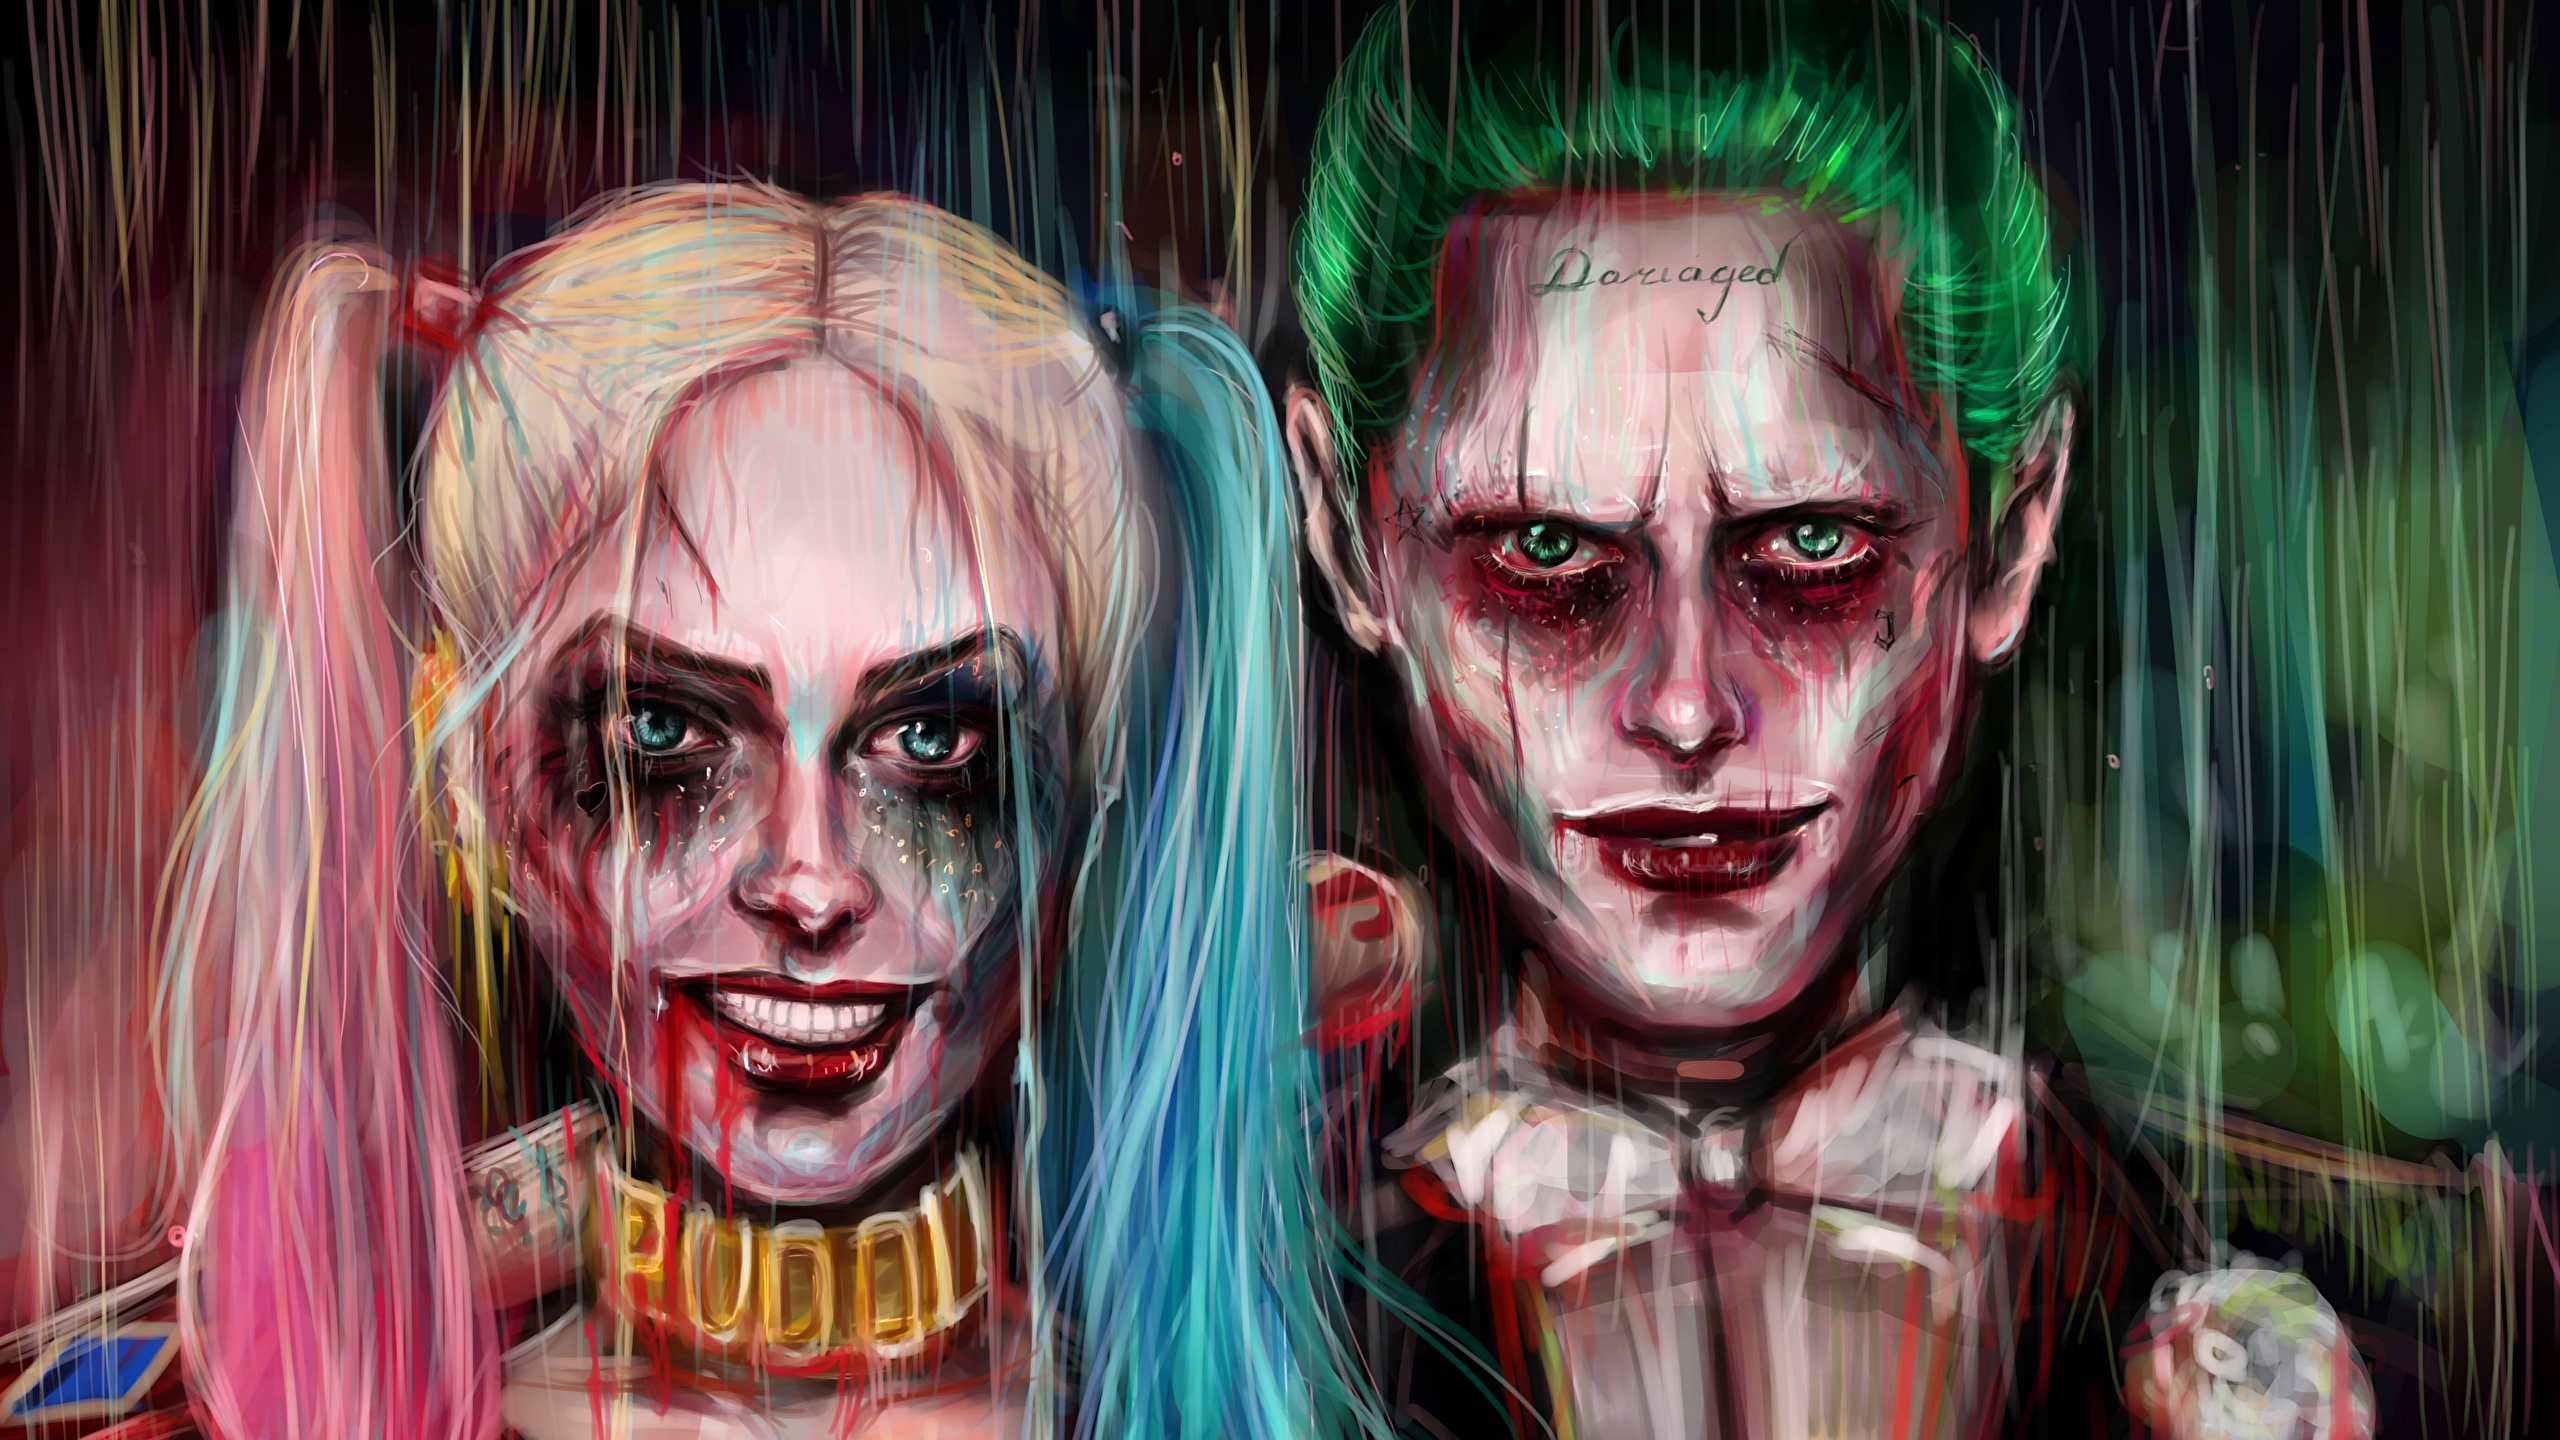 Photo Suicide Squad 2016 Jared Leto Margot Robbie Joker 2560x1440